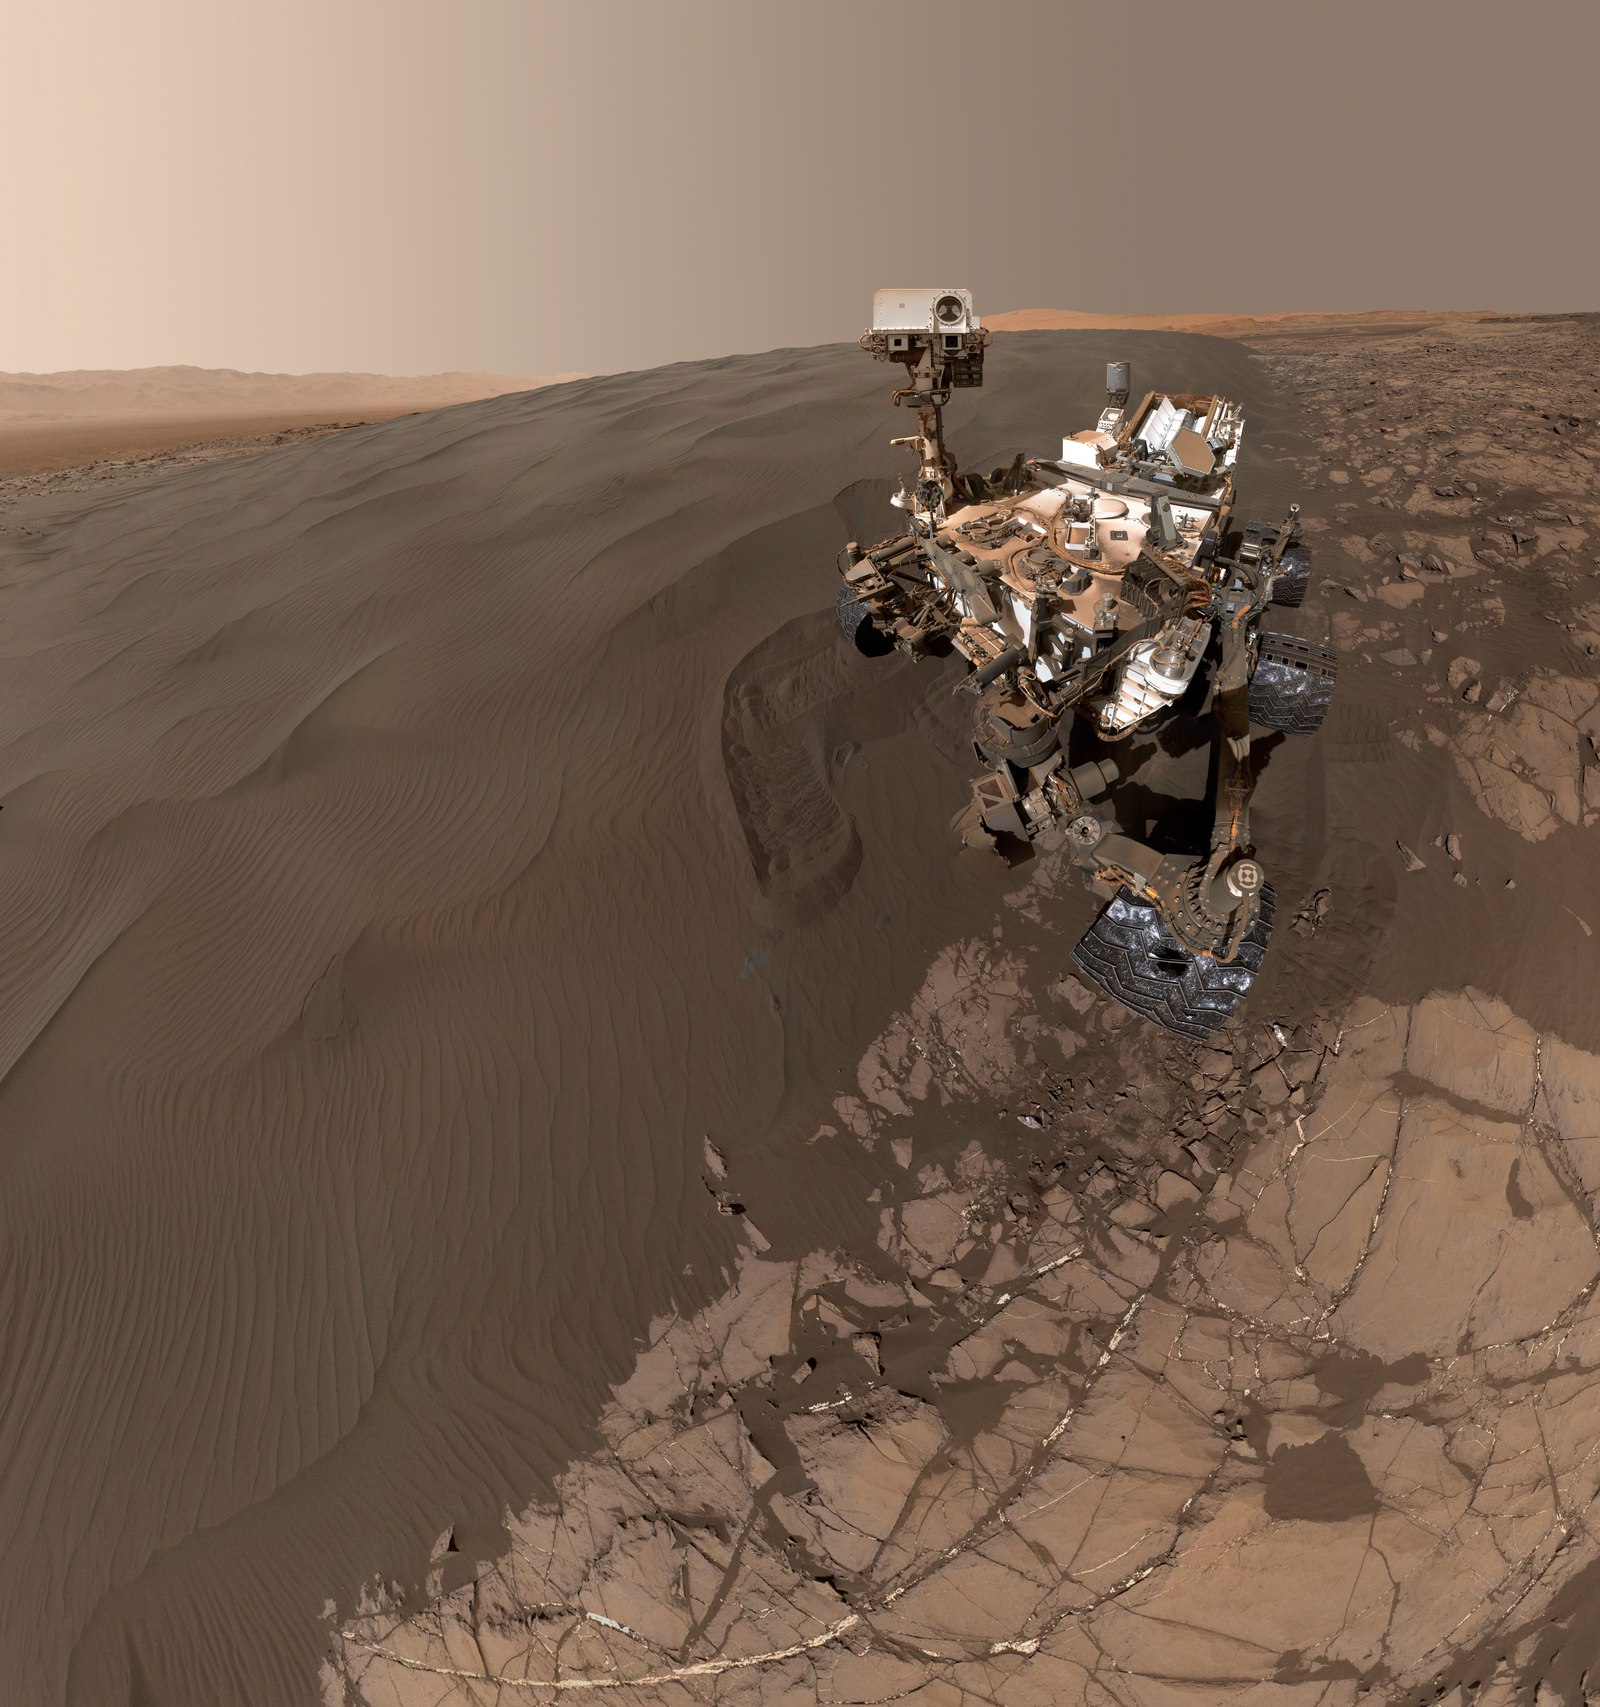 Curiosity Self-Portrait at Martian Sand Dune